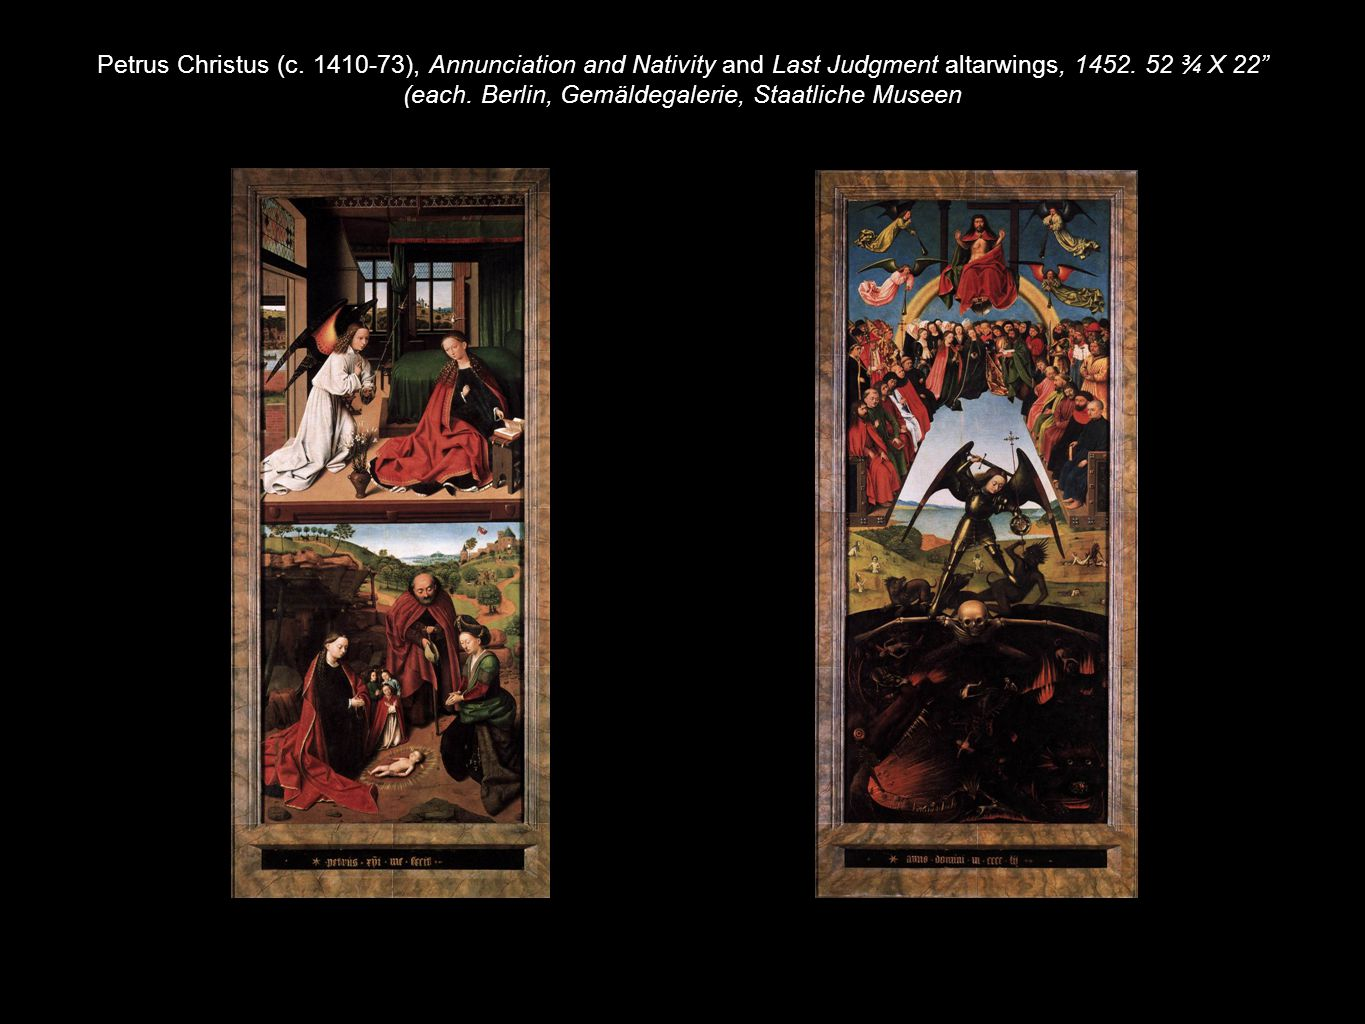 Petrus Christus (c. 1410-73), Annunciation and Nativity and Last Judgment altarwings, 1452. 52 ¾ X 22 (each. Berlin, Gemäldegalerie, Staatliche Museen